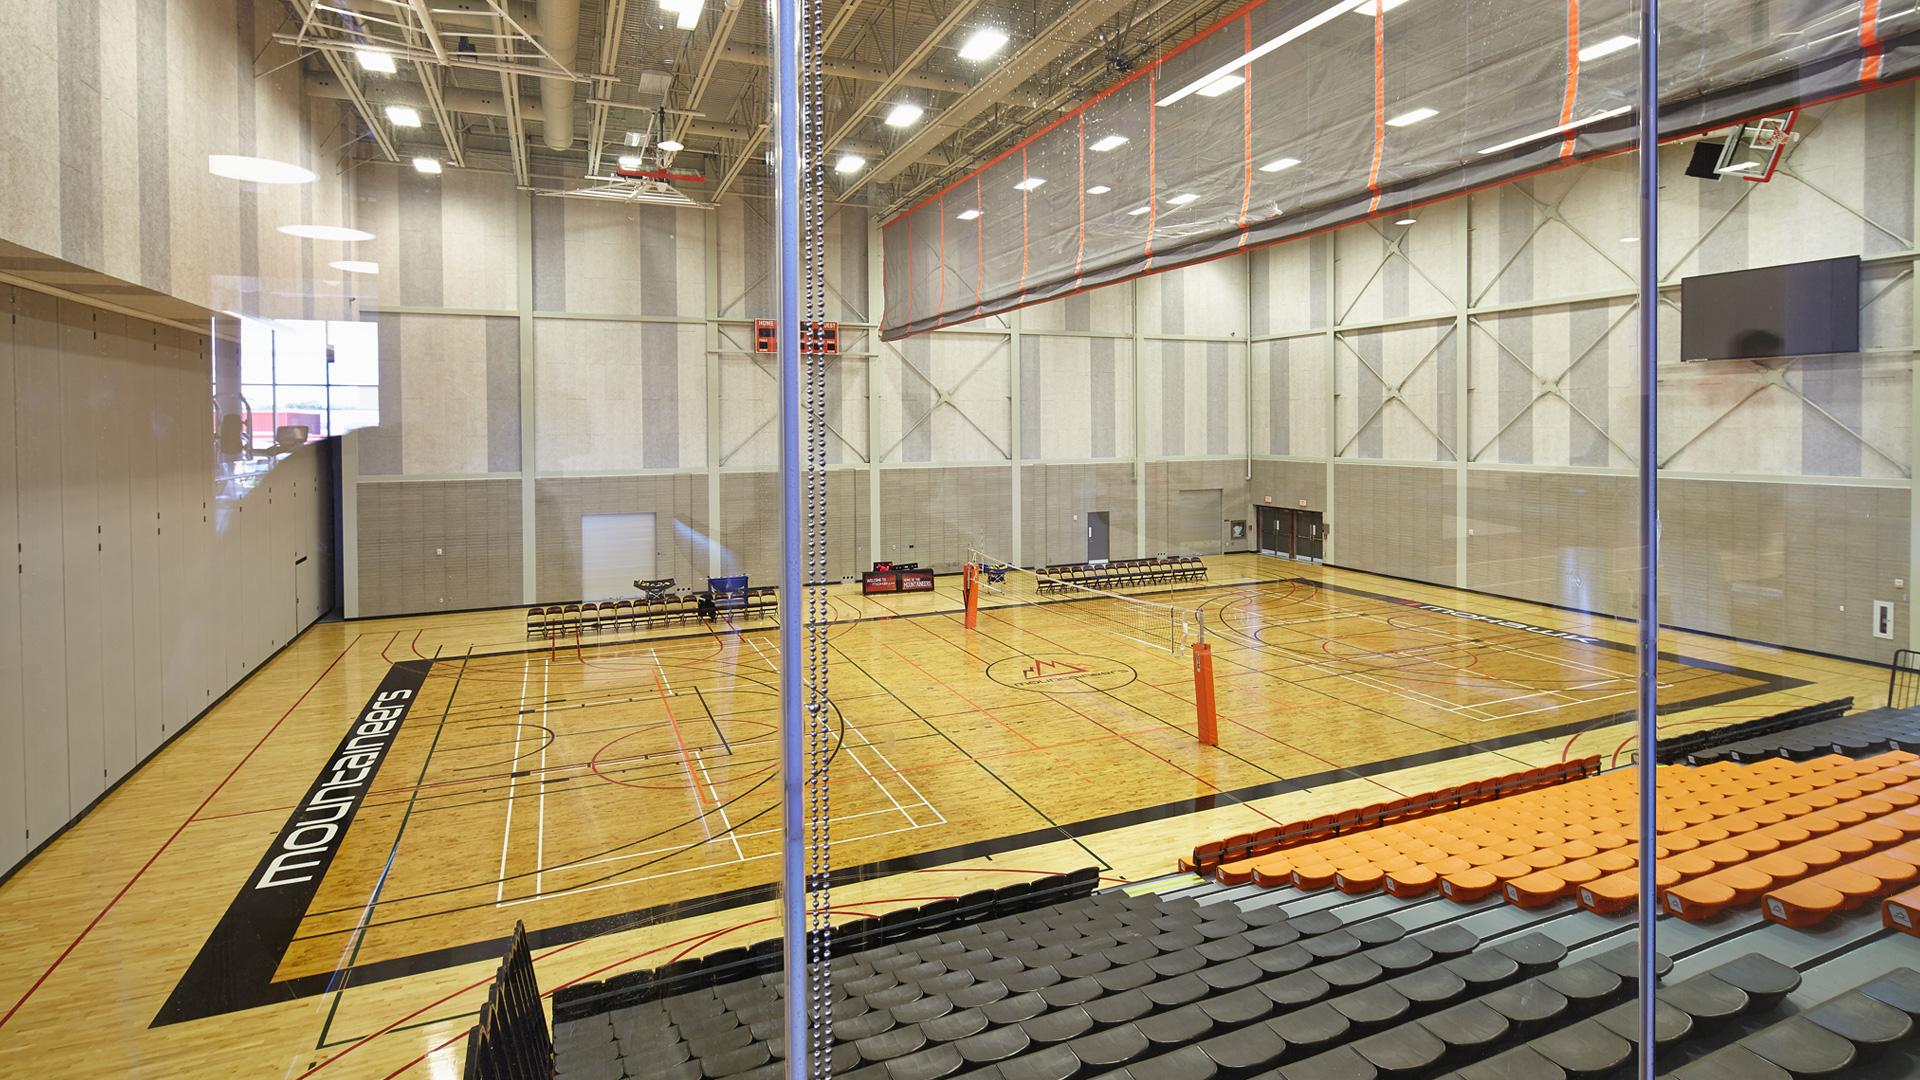 David braley athletics recreation centre mohawk college for Brooklyn college swimming pool membership